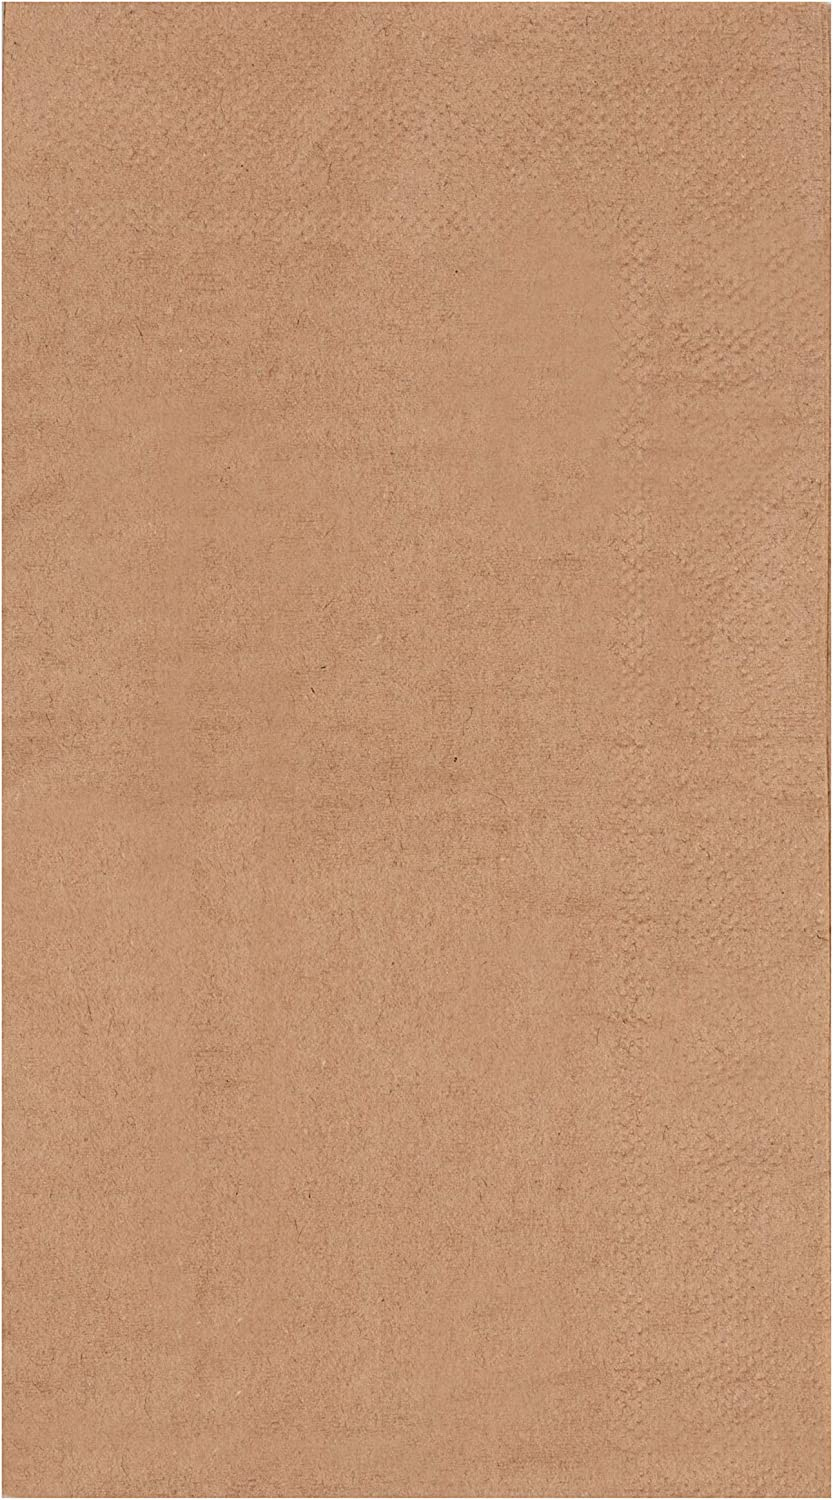 Kraft Party Supplies, Paper Napkins (Brown, 7.8 x 4.4 In, 200 Pack)